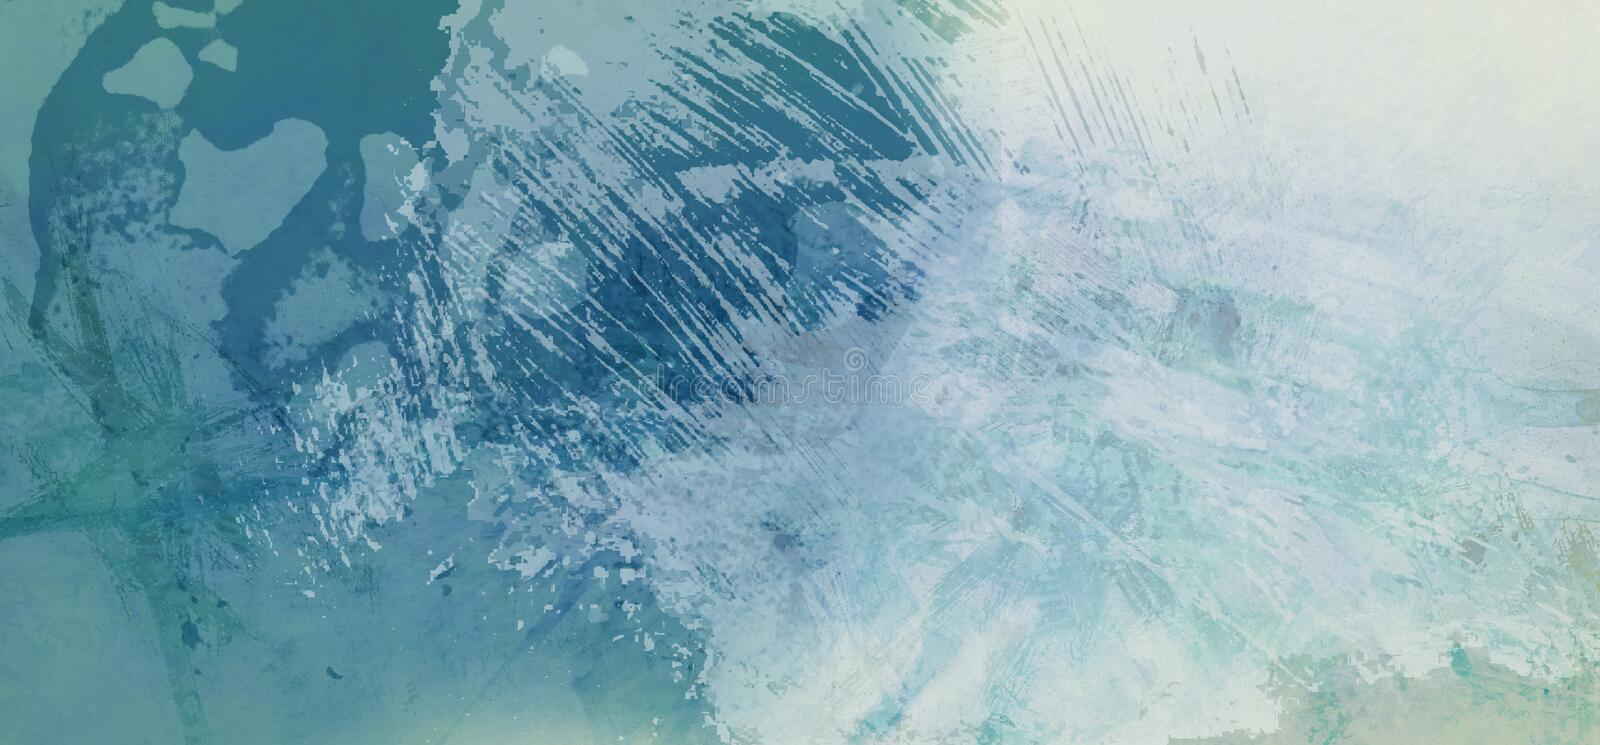 Blue and white background texture and distressed paint grunge design with scratched lines and paint blobs in artsy abstract. Design royalty free illustration